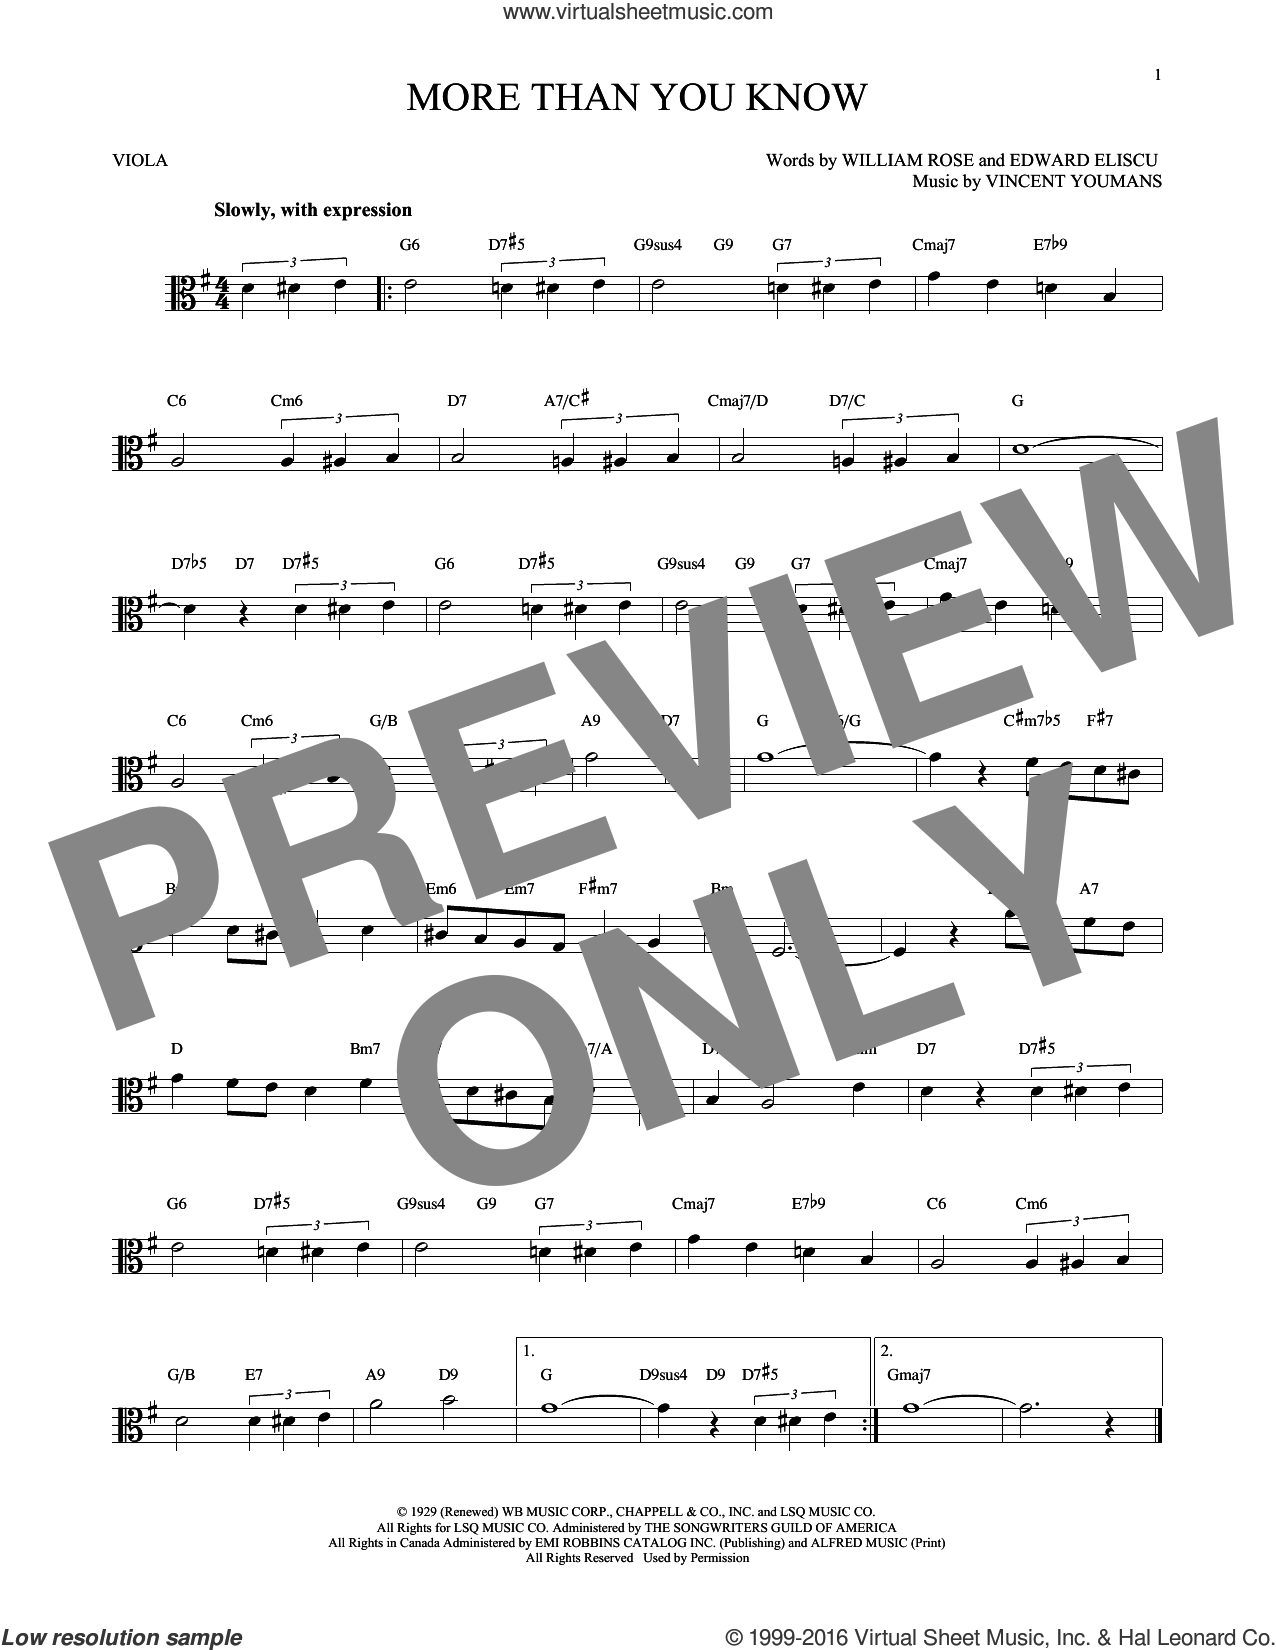 More Than You Know sheet music for viola solo by Vincent Youmans, Edward Eliscu and William Rose, intermediate